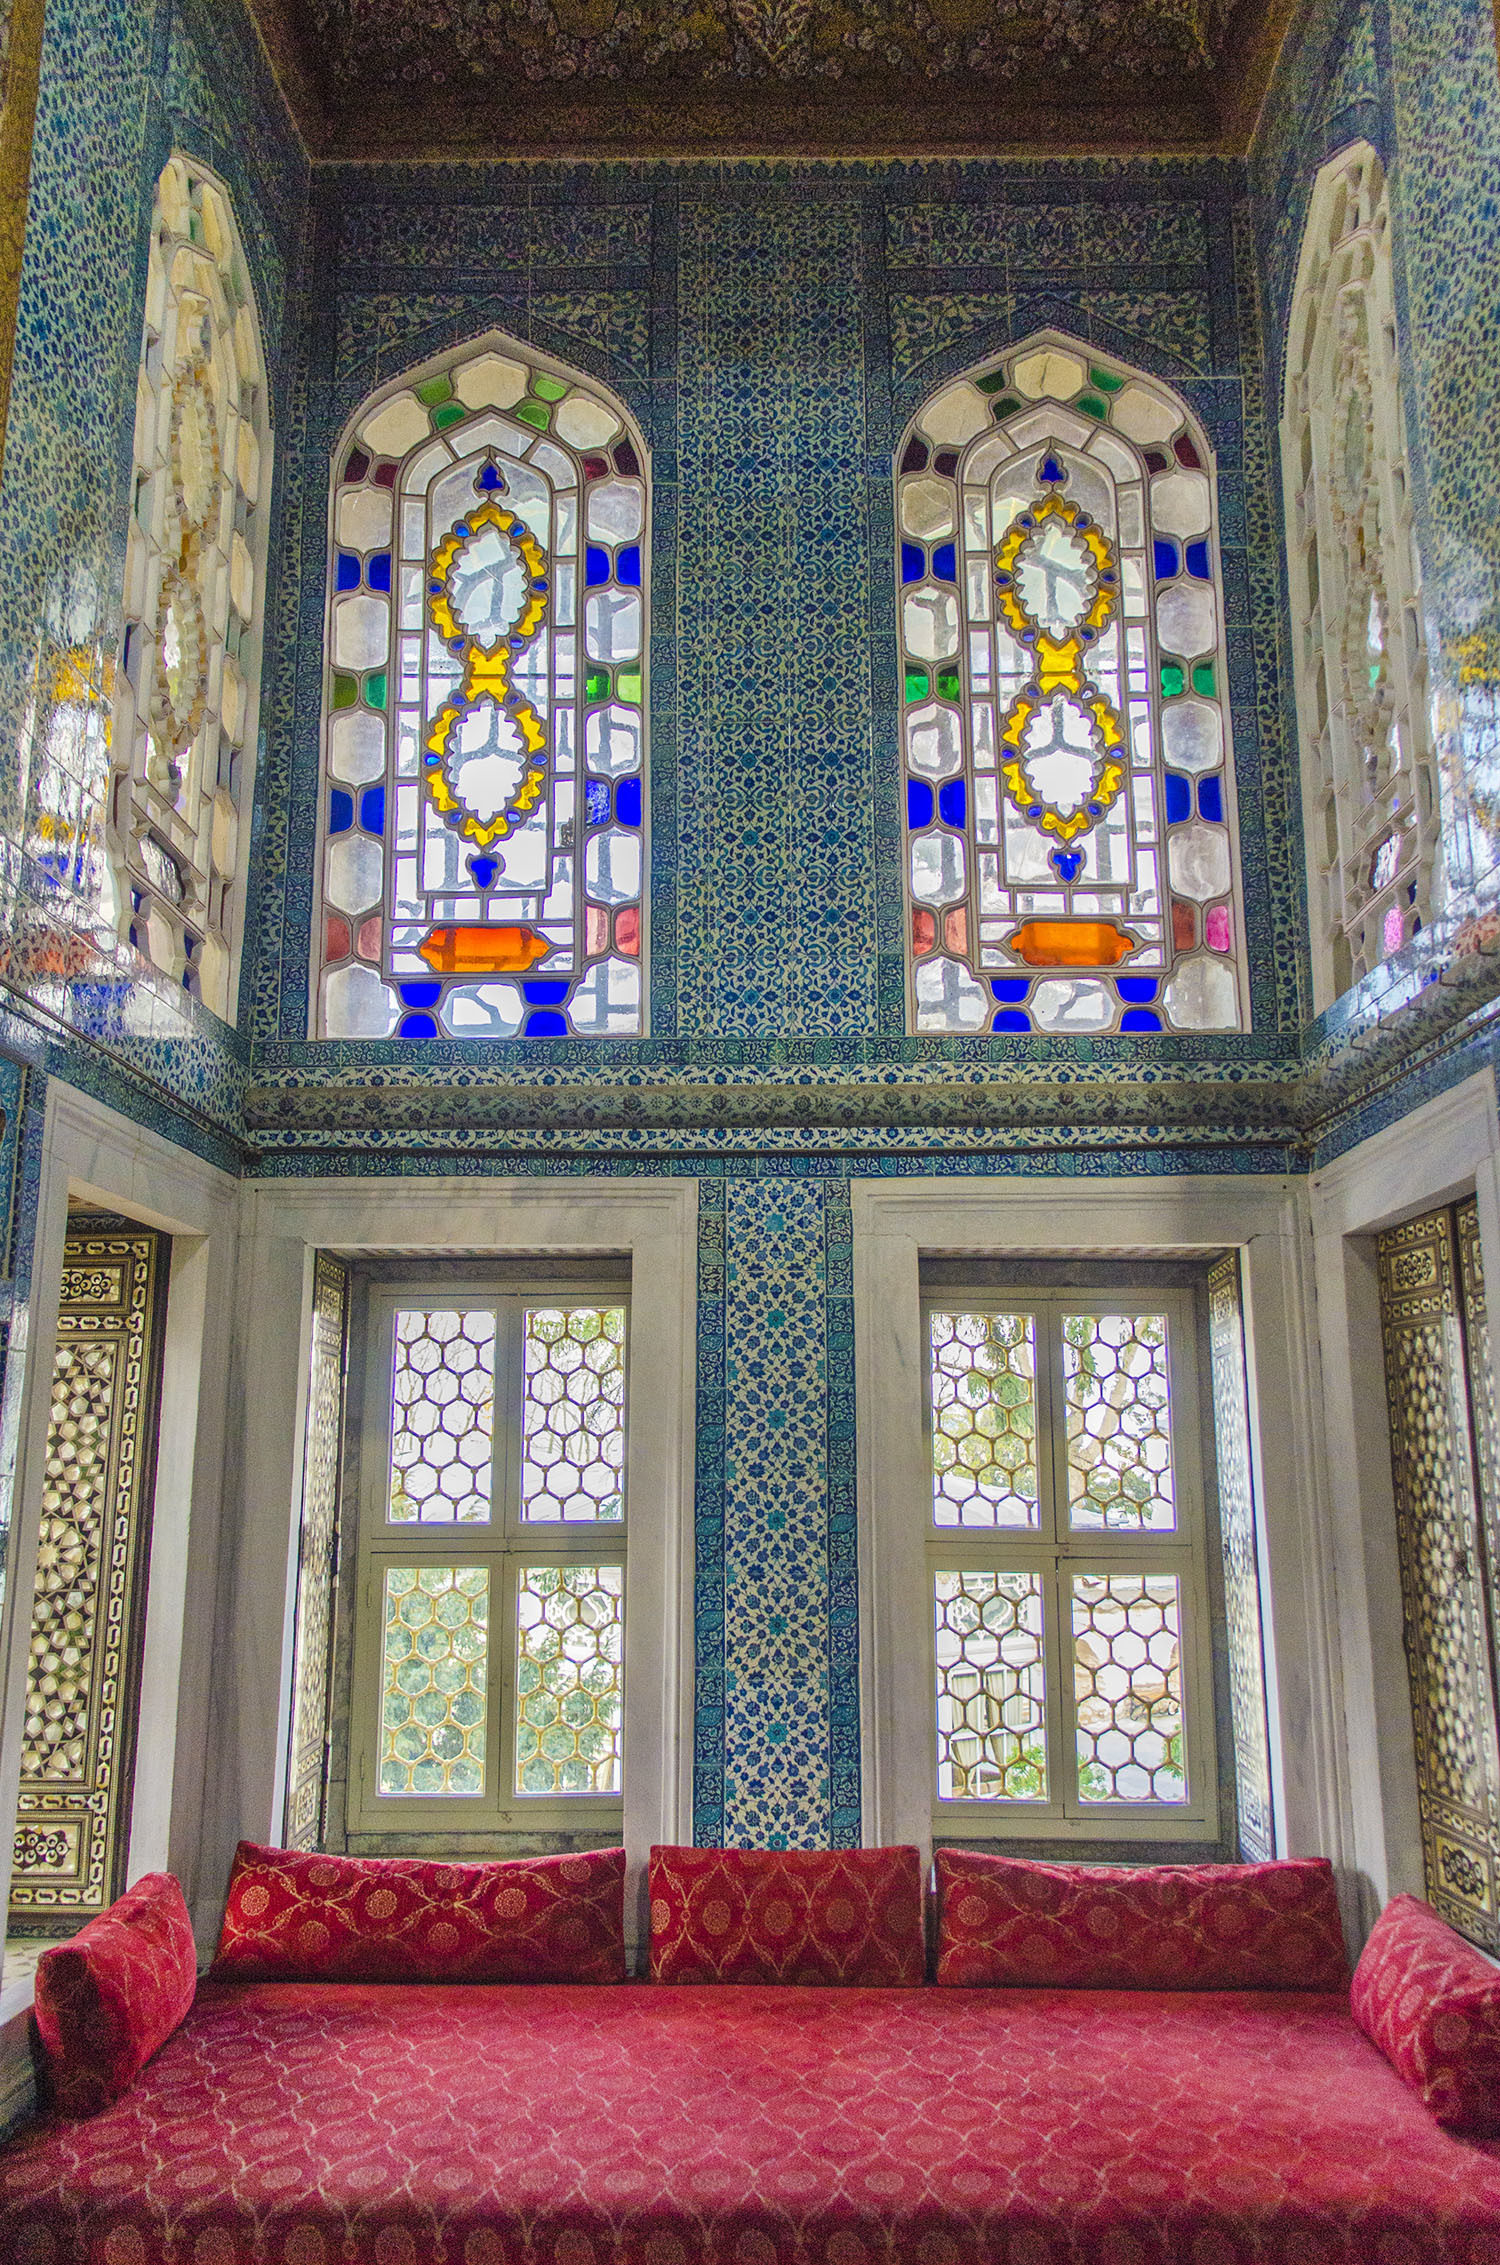 The sitting room of Ottoman royals in Topkapi Palace.